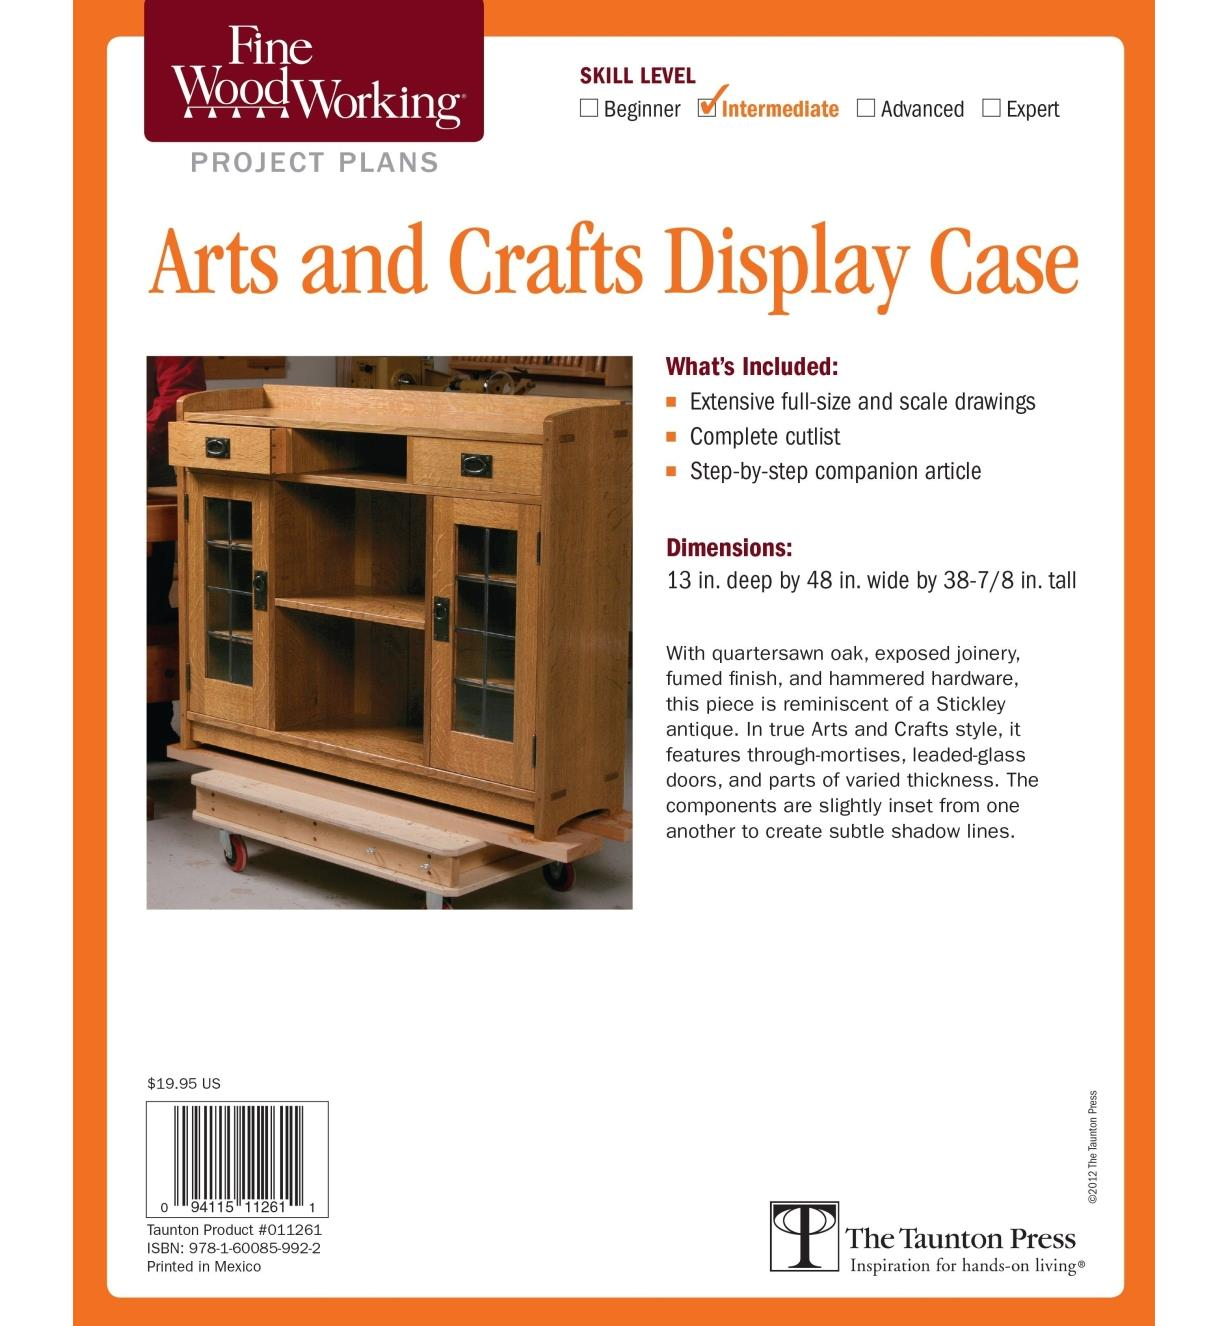 73L2547 - Arts and Crafts Display Case Plan